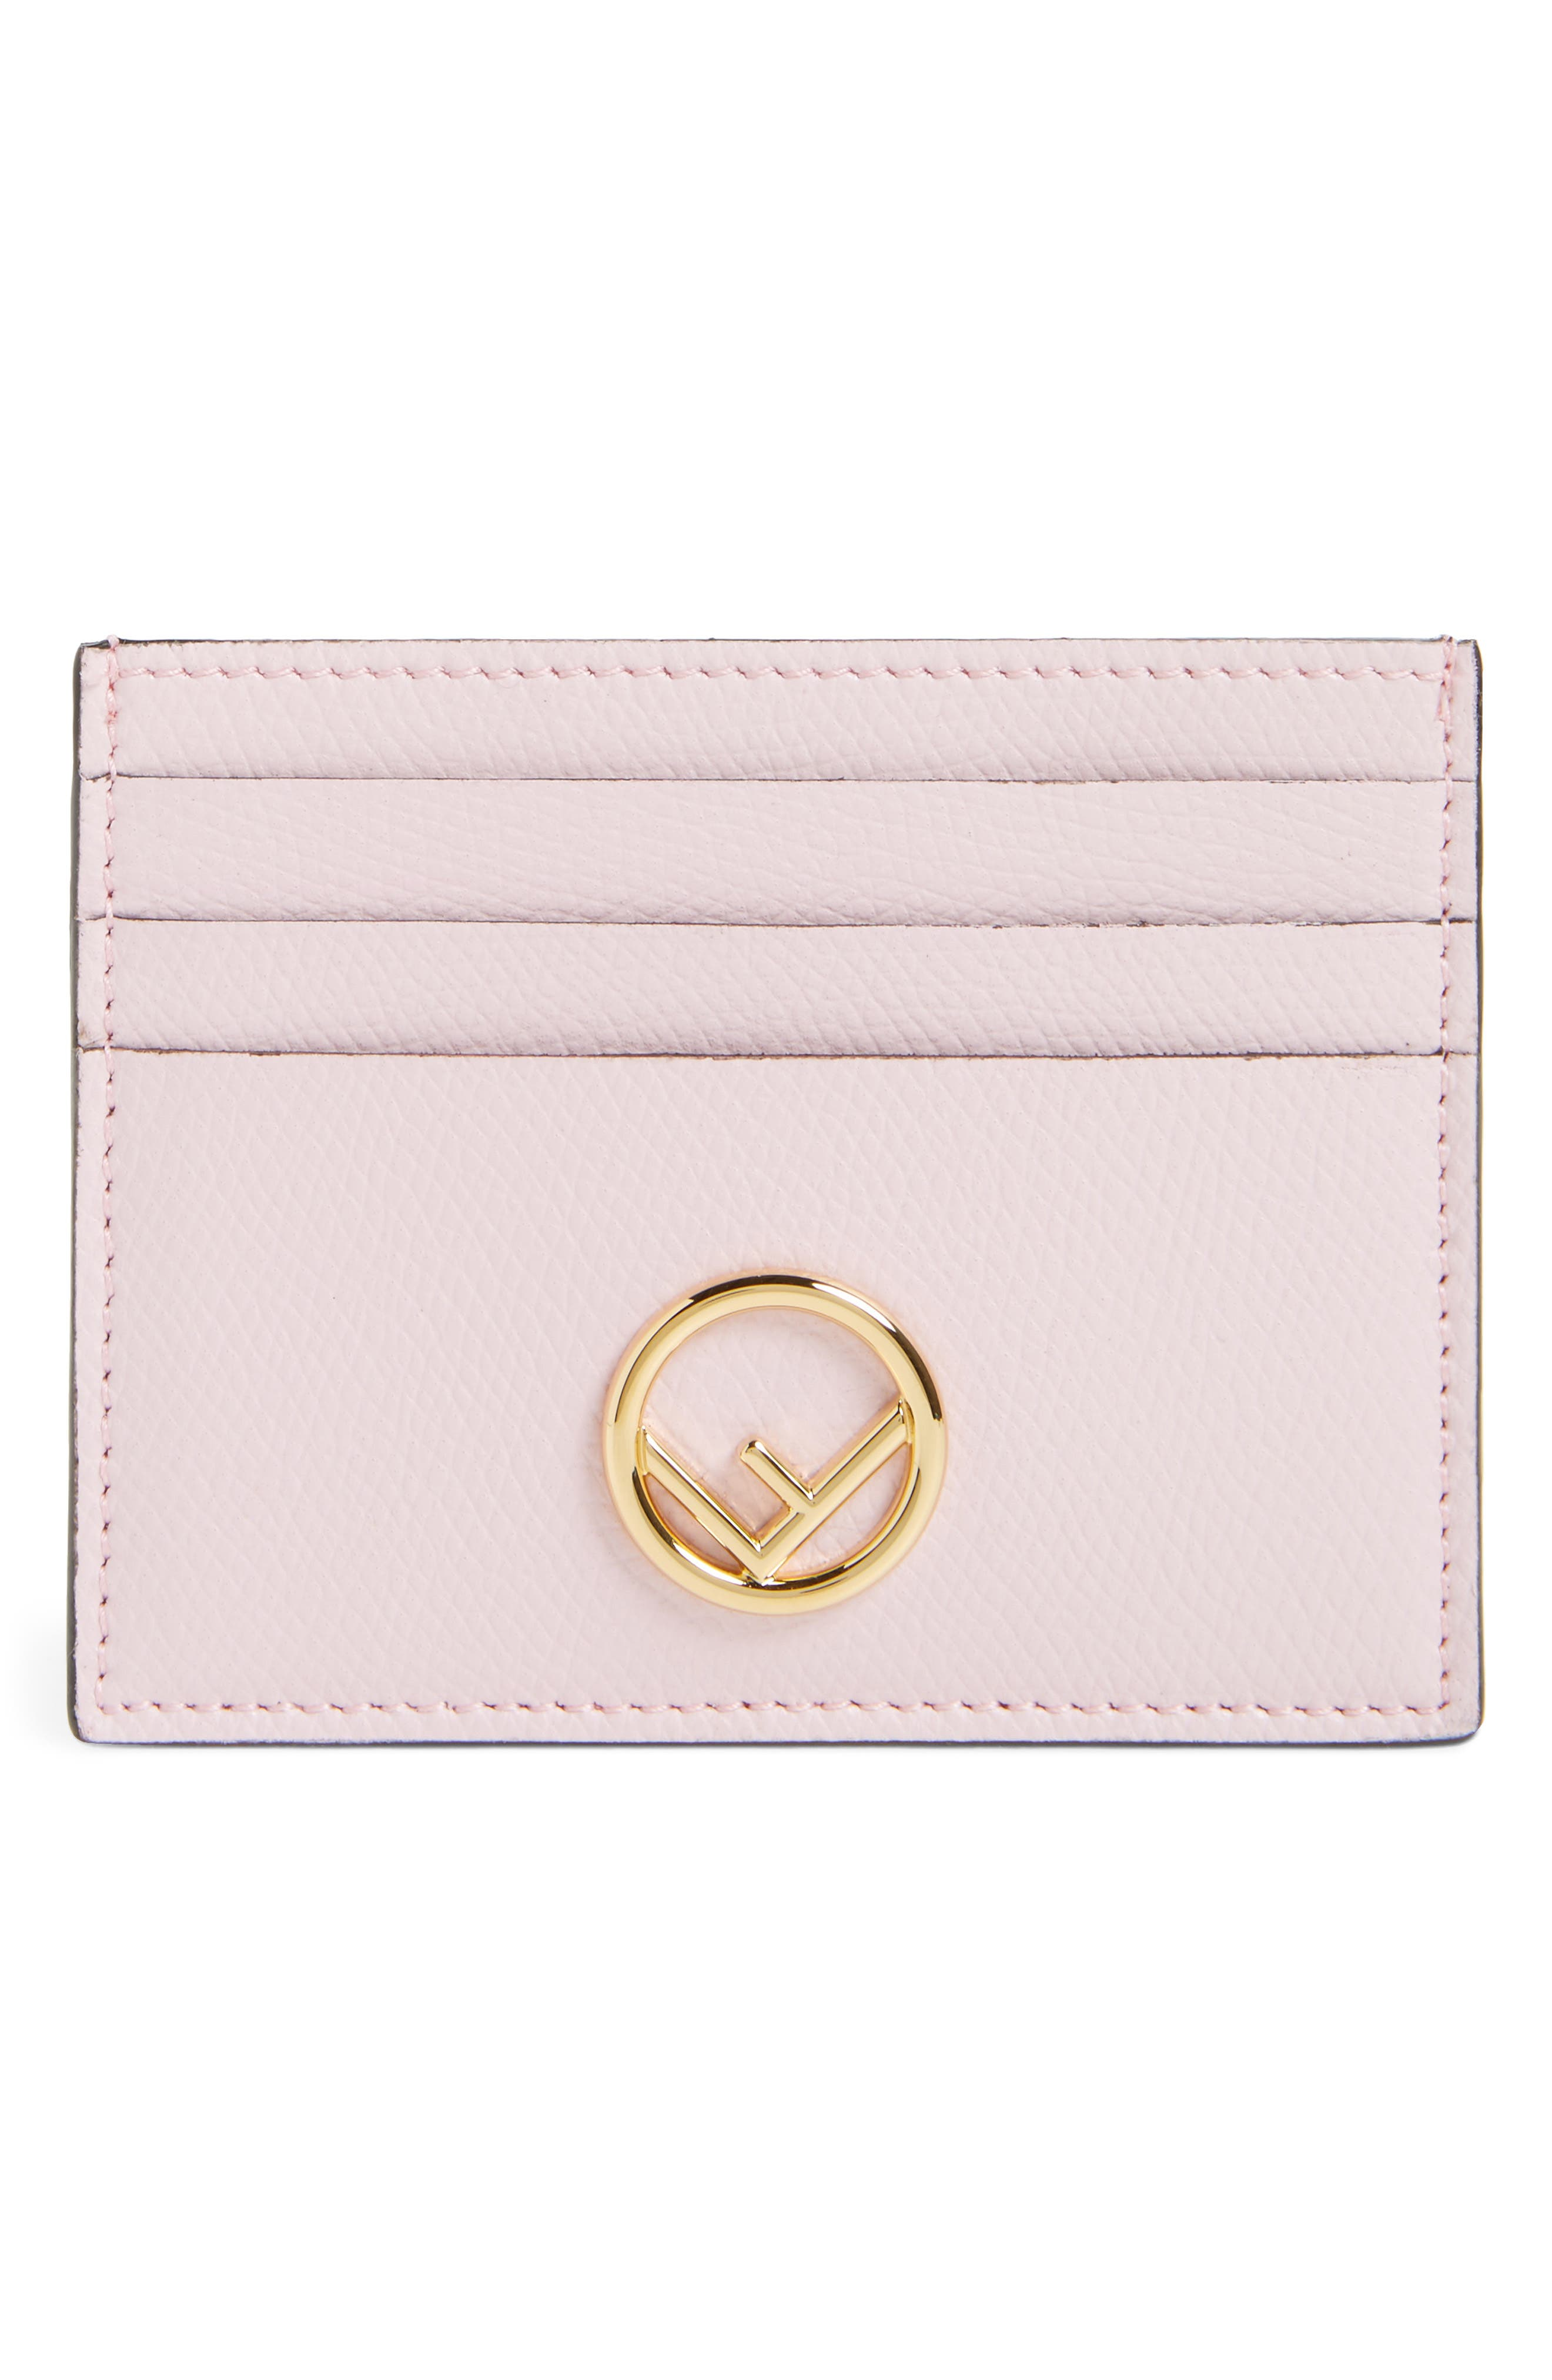 Leather Card Case,                         Main,                         color, Peony/ Oro Soft